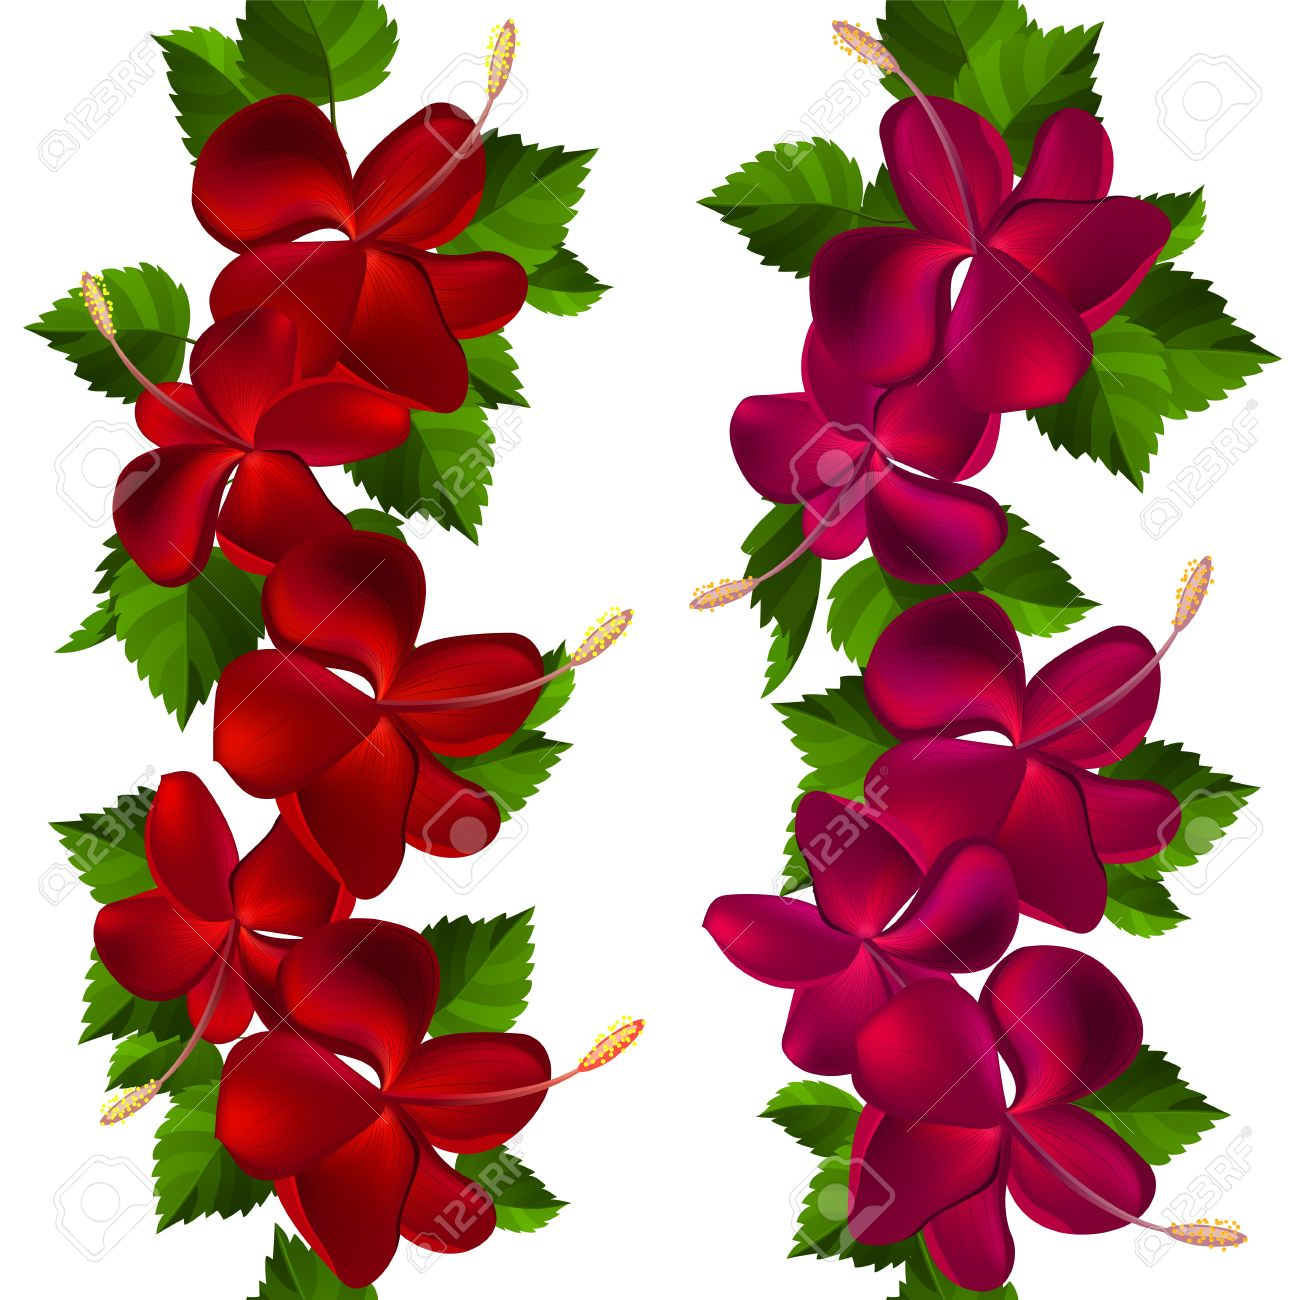 Samless Border Made Of Hibiscus Flowers Royalty Free Cliparts